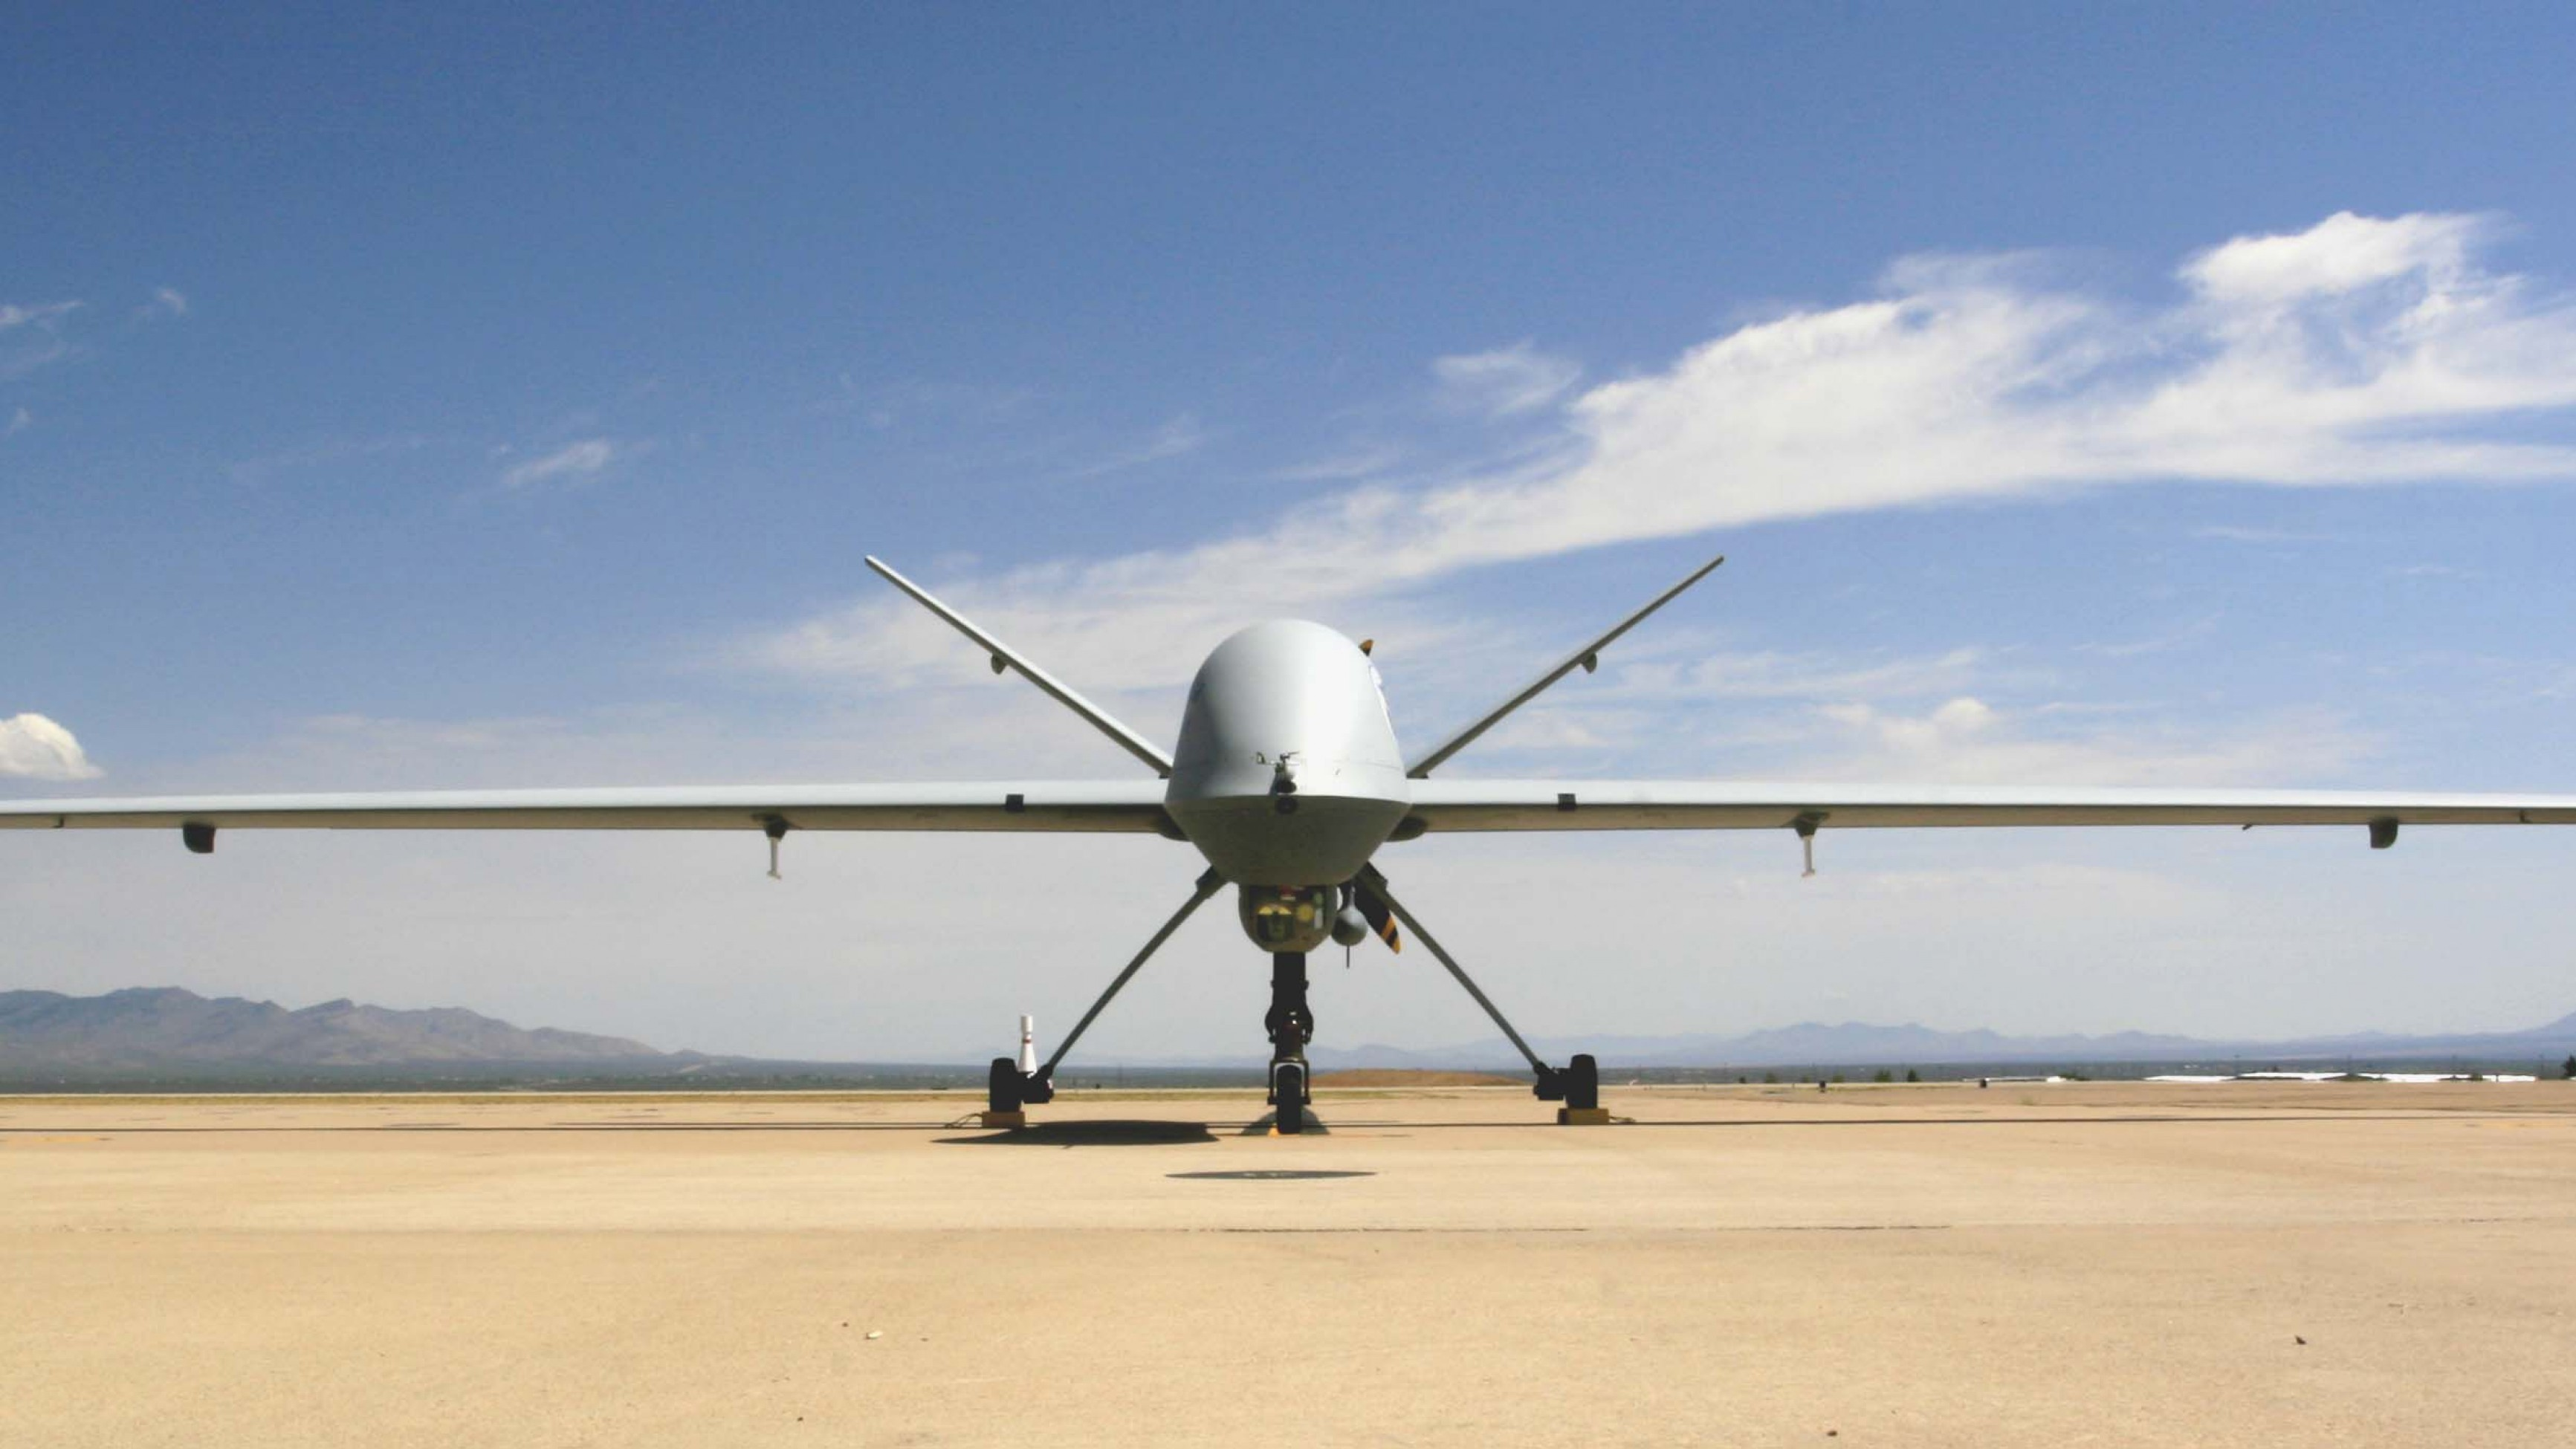 If You Want Government Drone Documents, Be Prepared to Sue